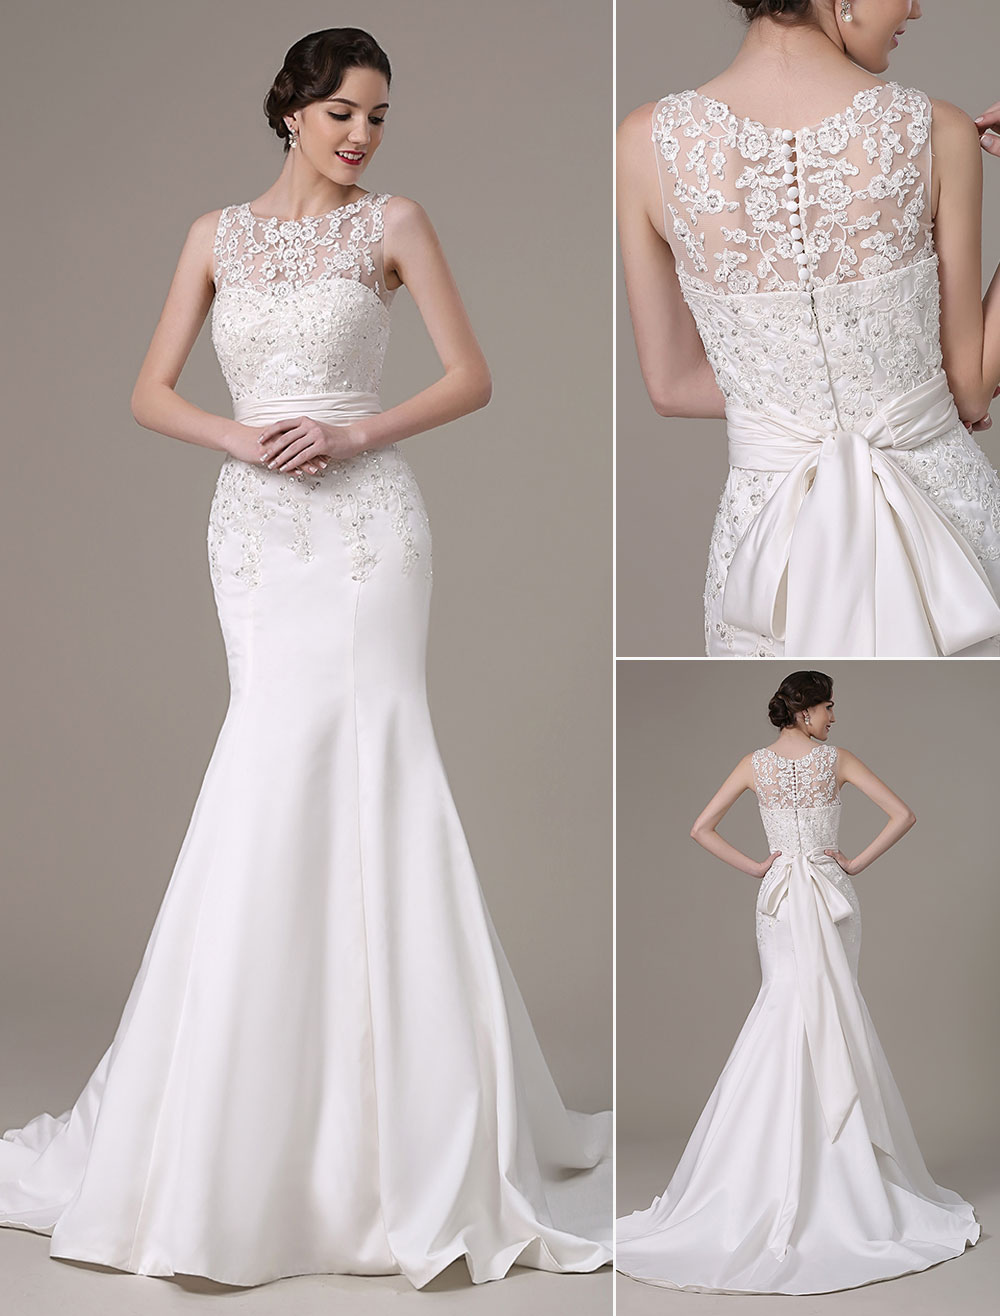 Mermaid Wedding Dresses With Elegant Detachable Lace Jacket Sweep Train(Veil not included) Milanoo